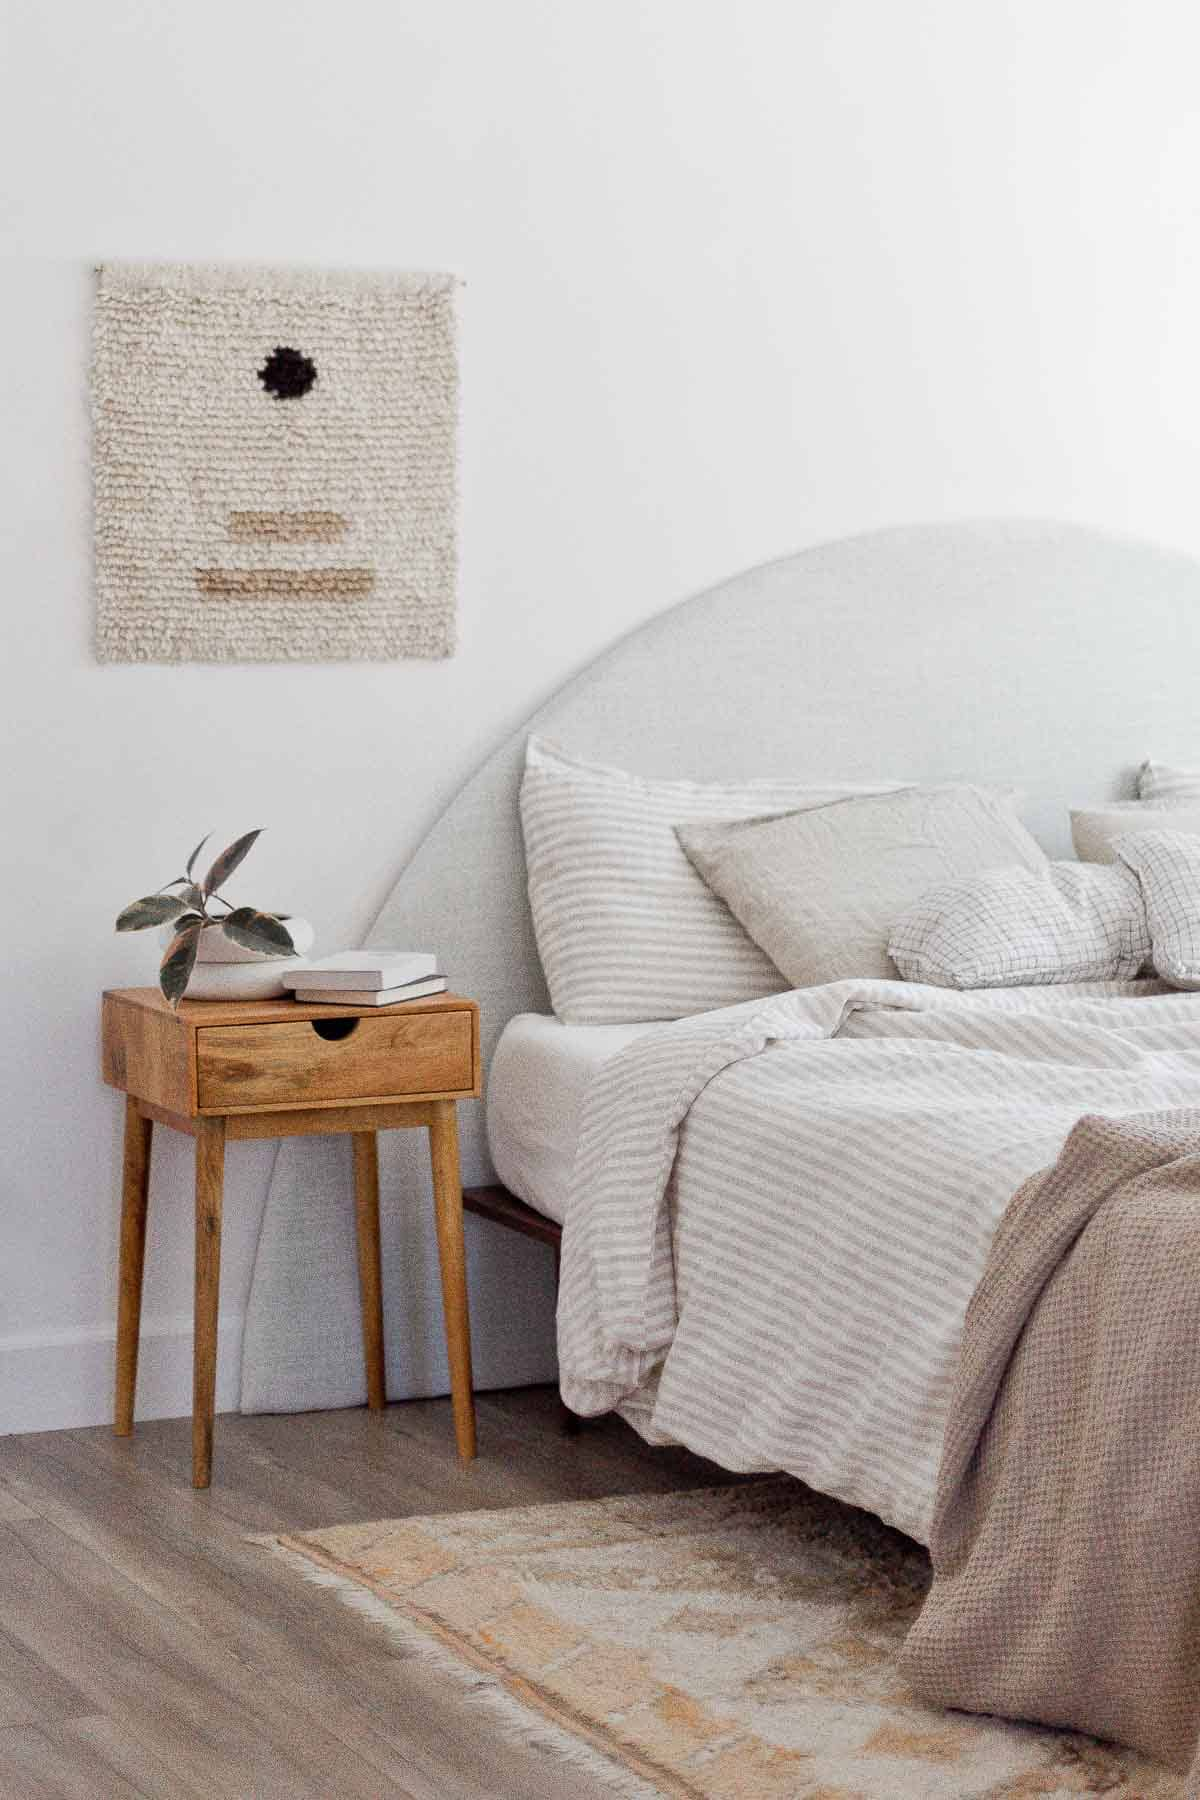 Minimal modern bedroom with neutral bedding and linen half circle headboard.